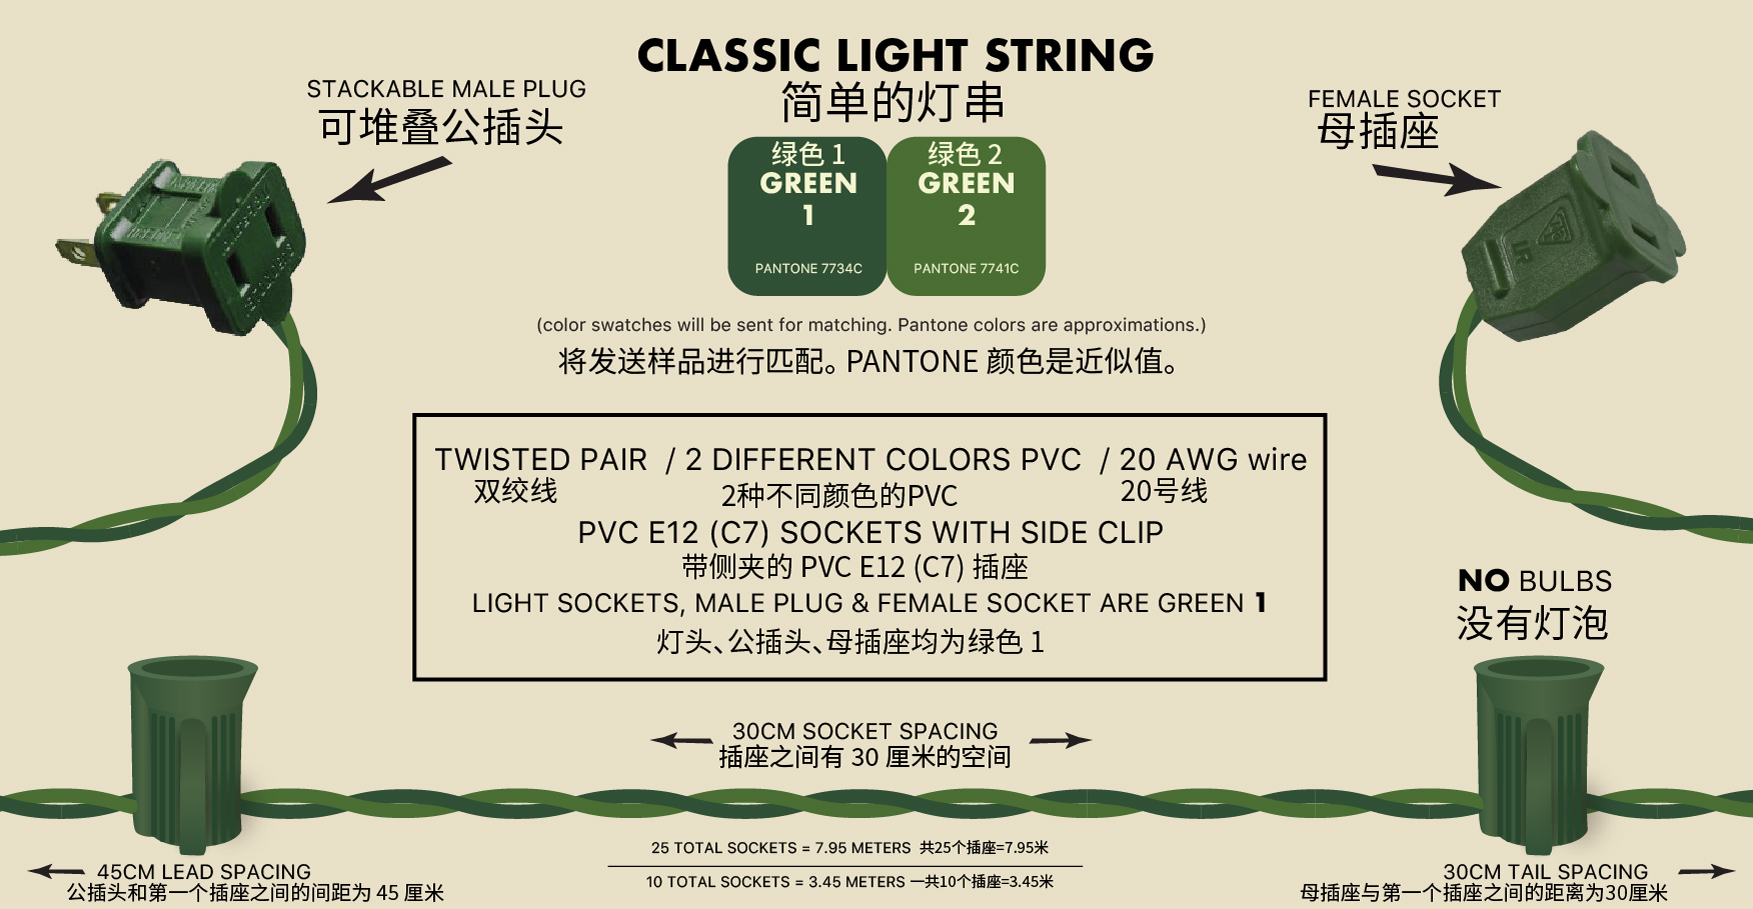 light-string-specifications-Classic